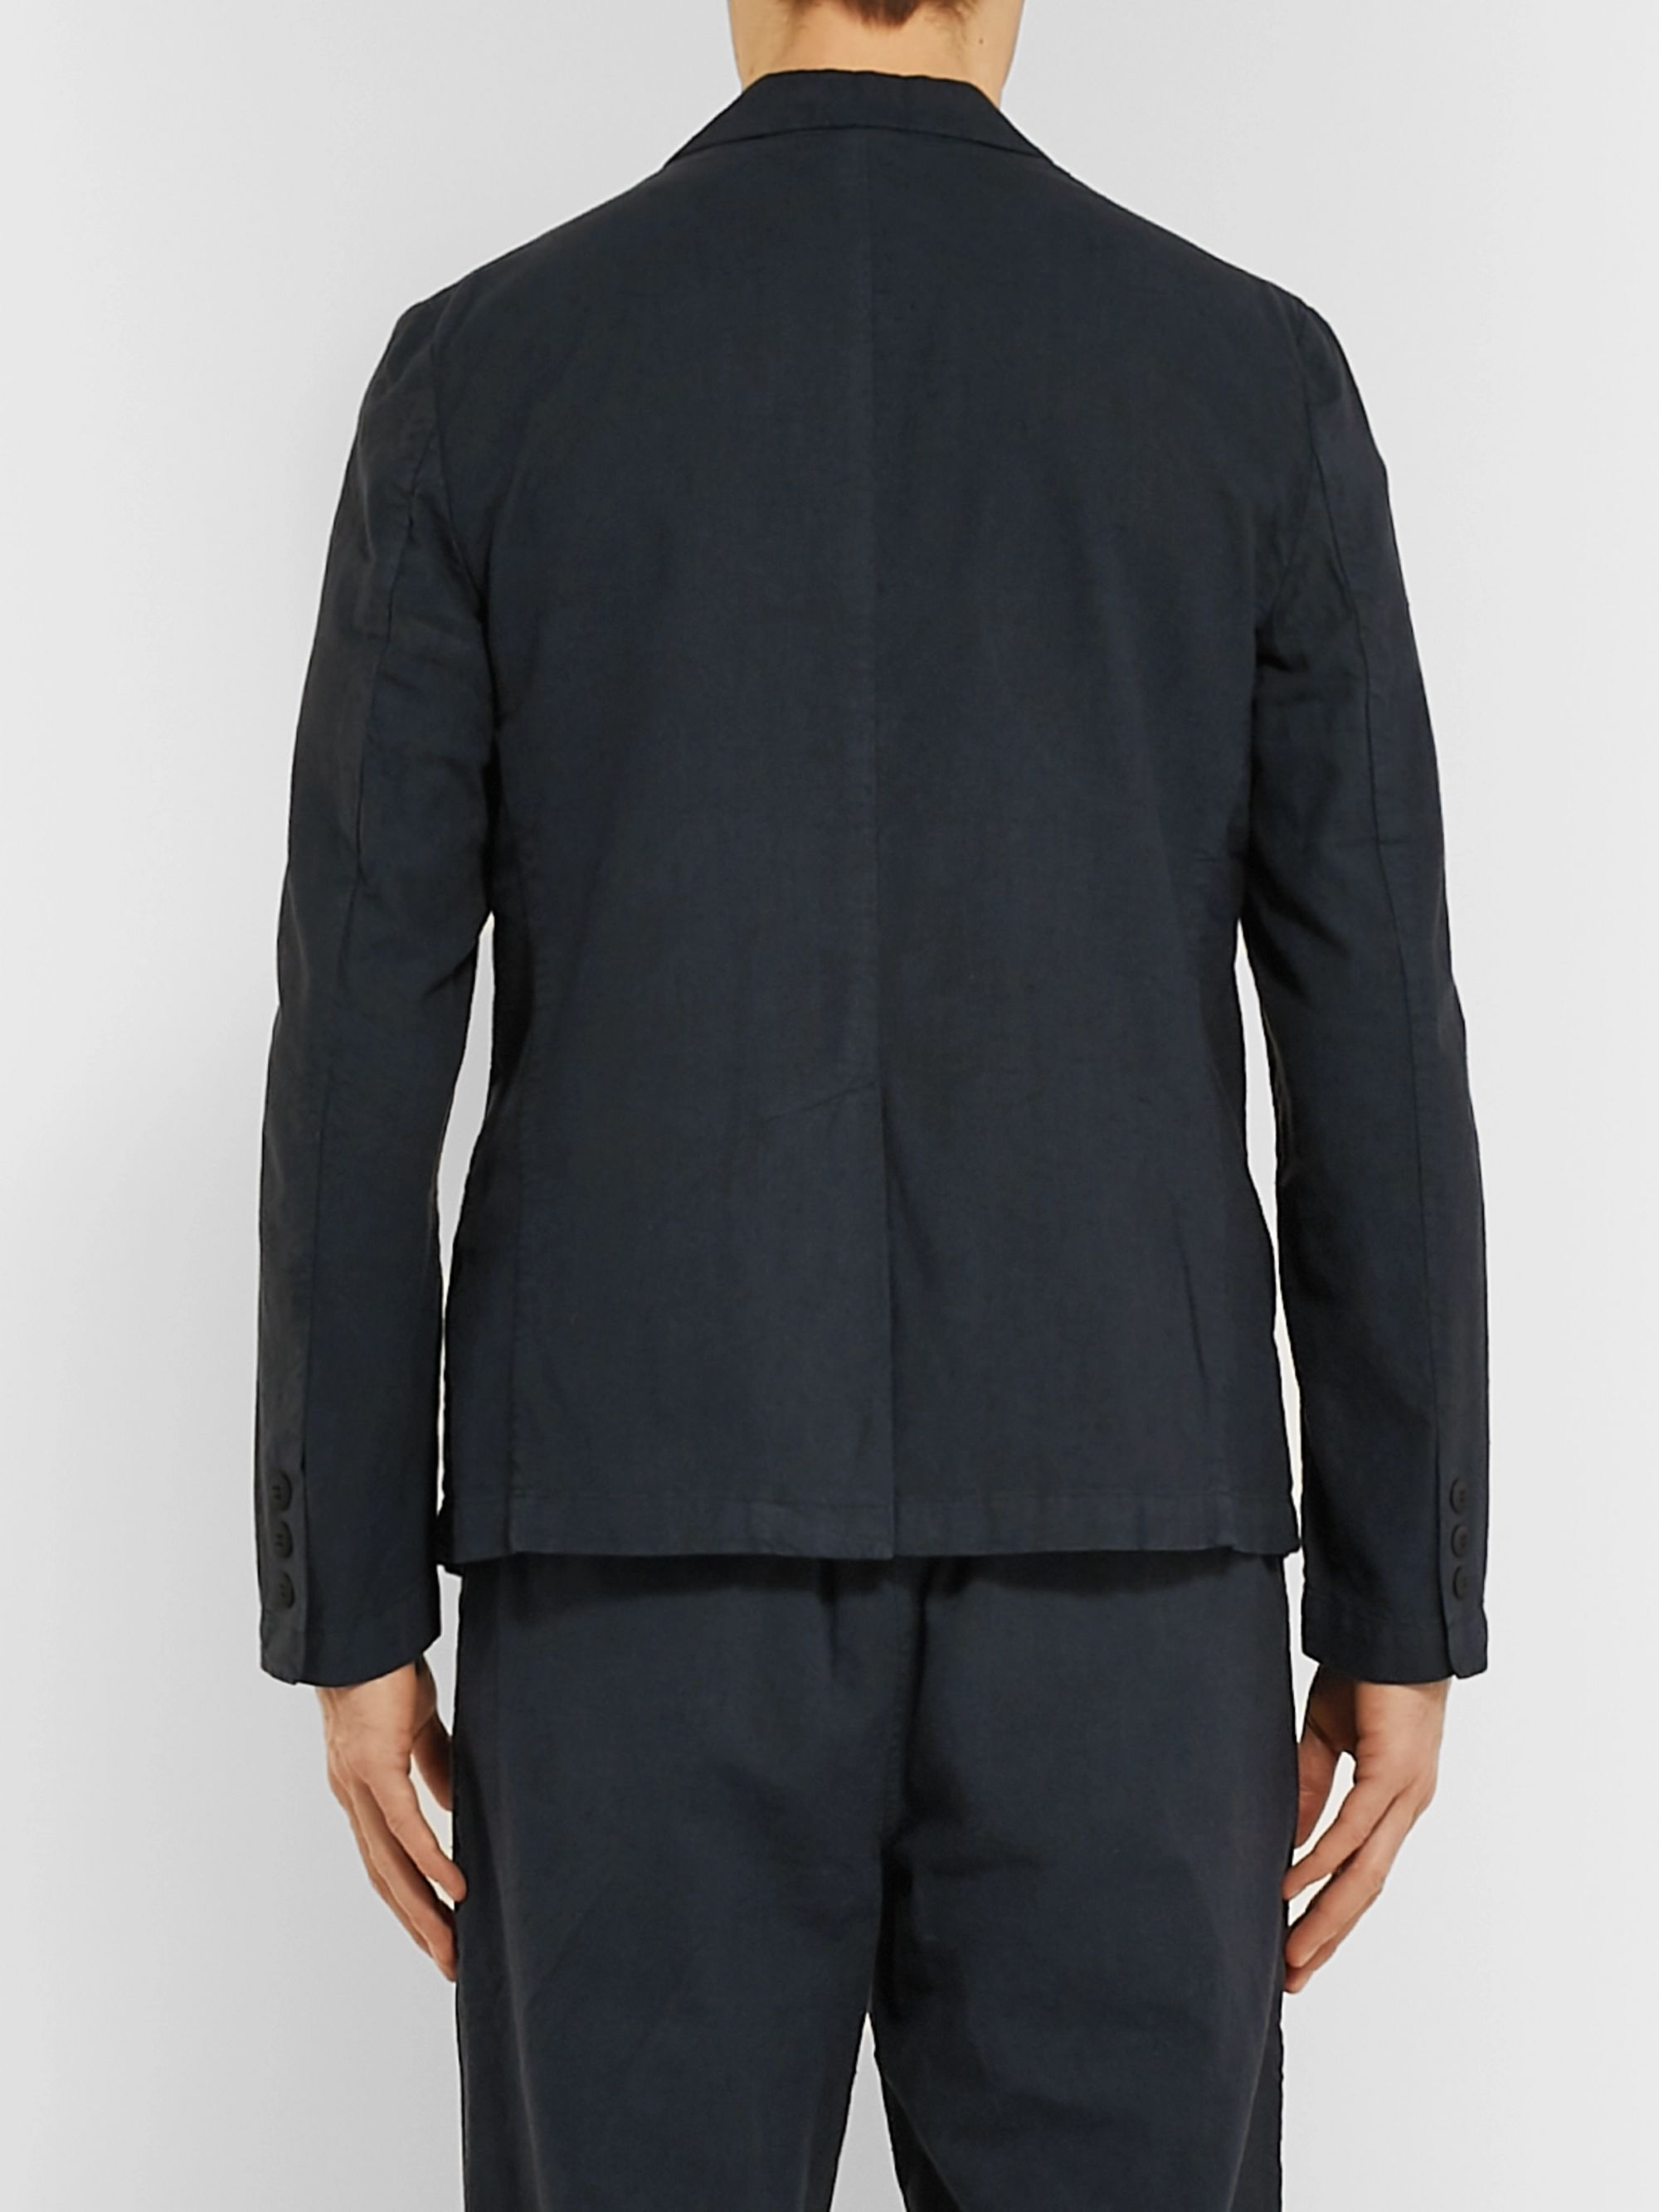 Folk Navy Slim-Fit Unstructured Linen and Cotton-Blend Suit Jacket